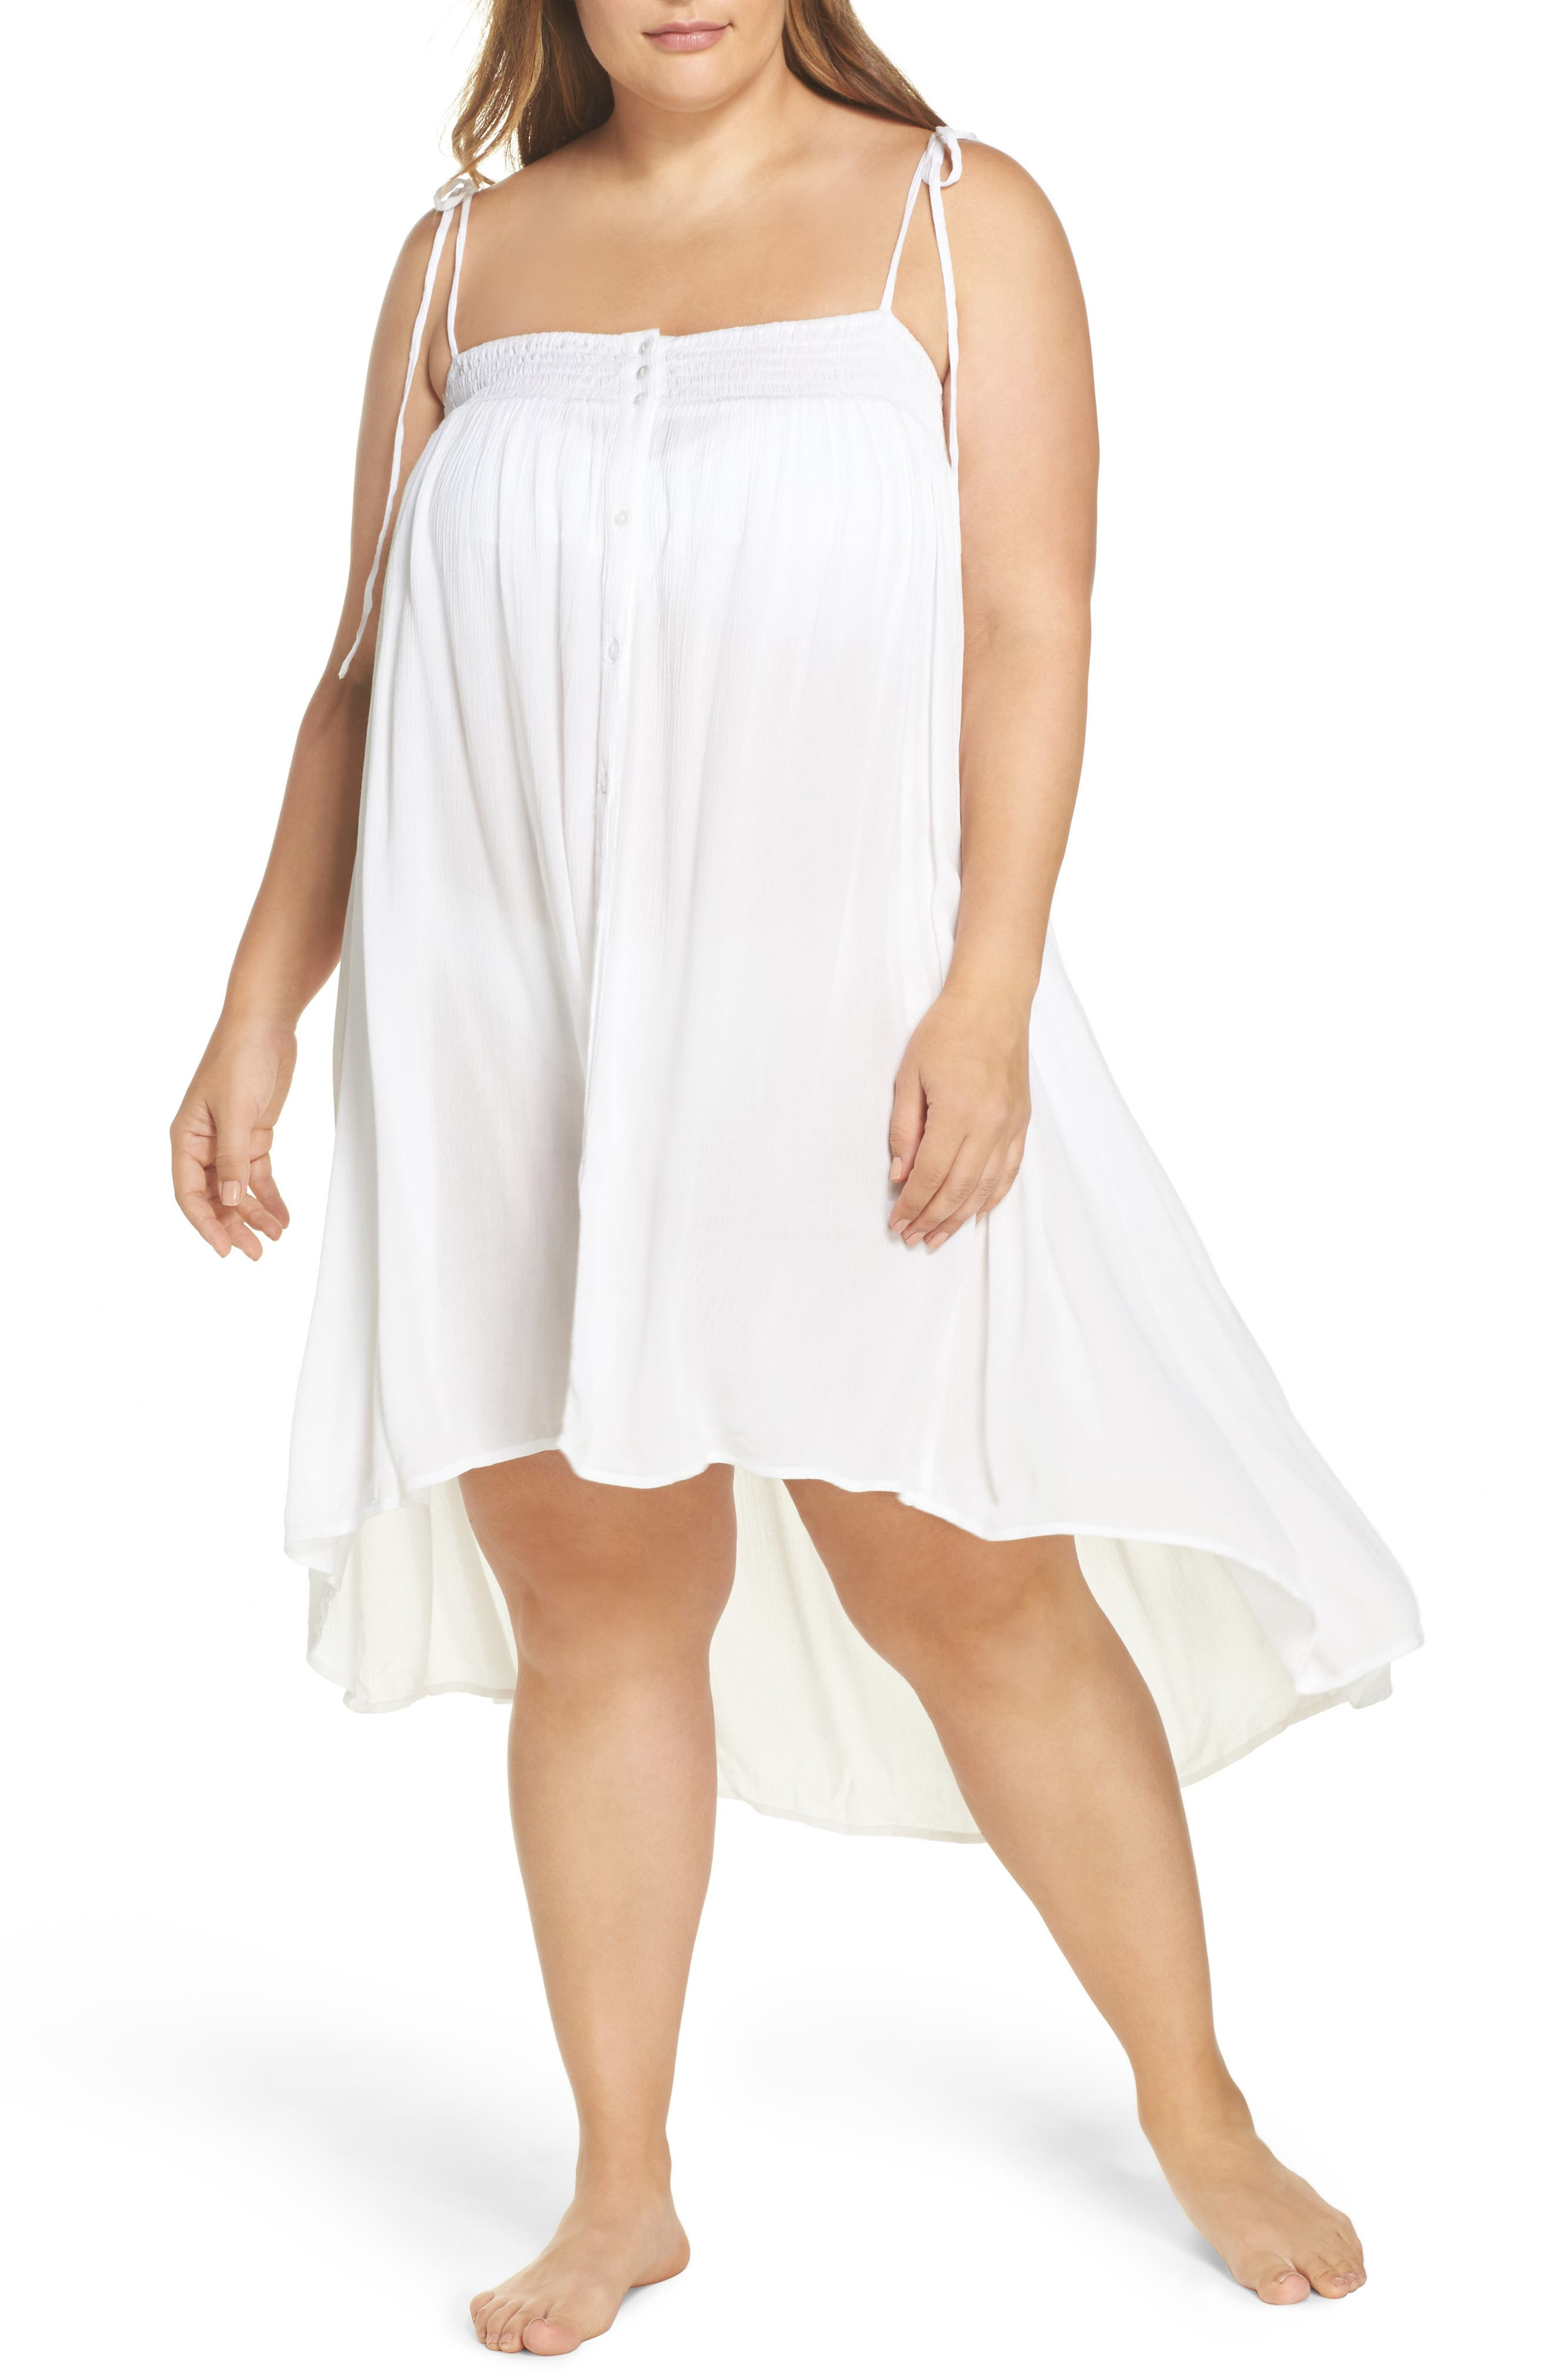 Oliva Cover-Up Dress,                             Main thumbnail 1, color,                             White